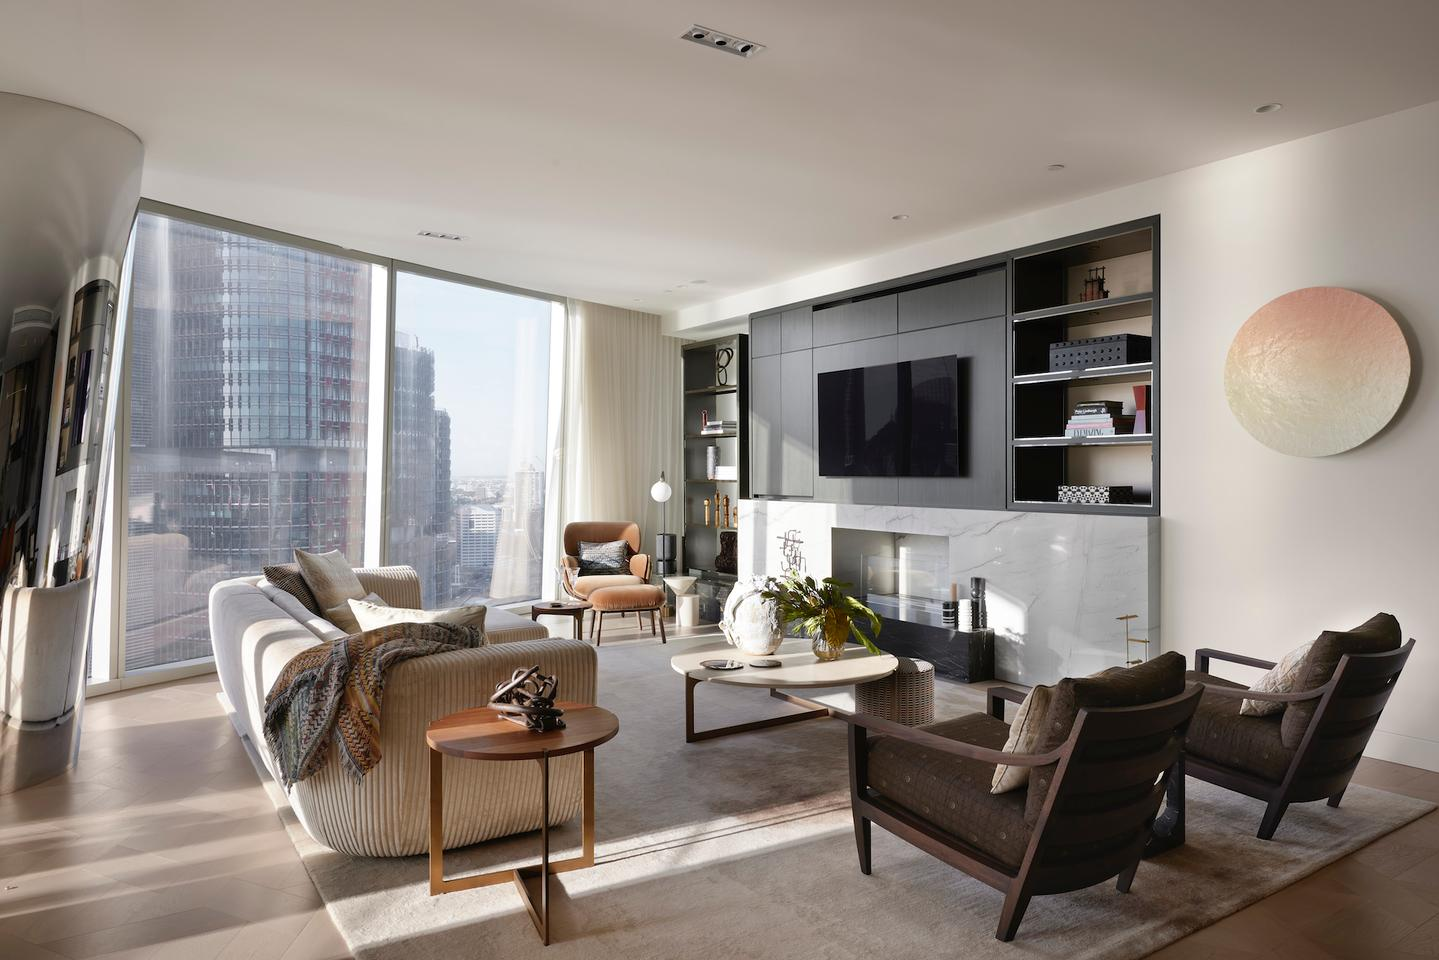 One Barangaroo includes 76 luxury residential apartments